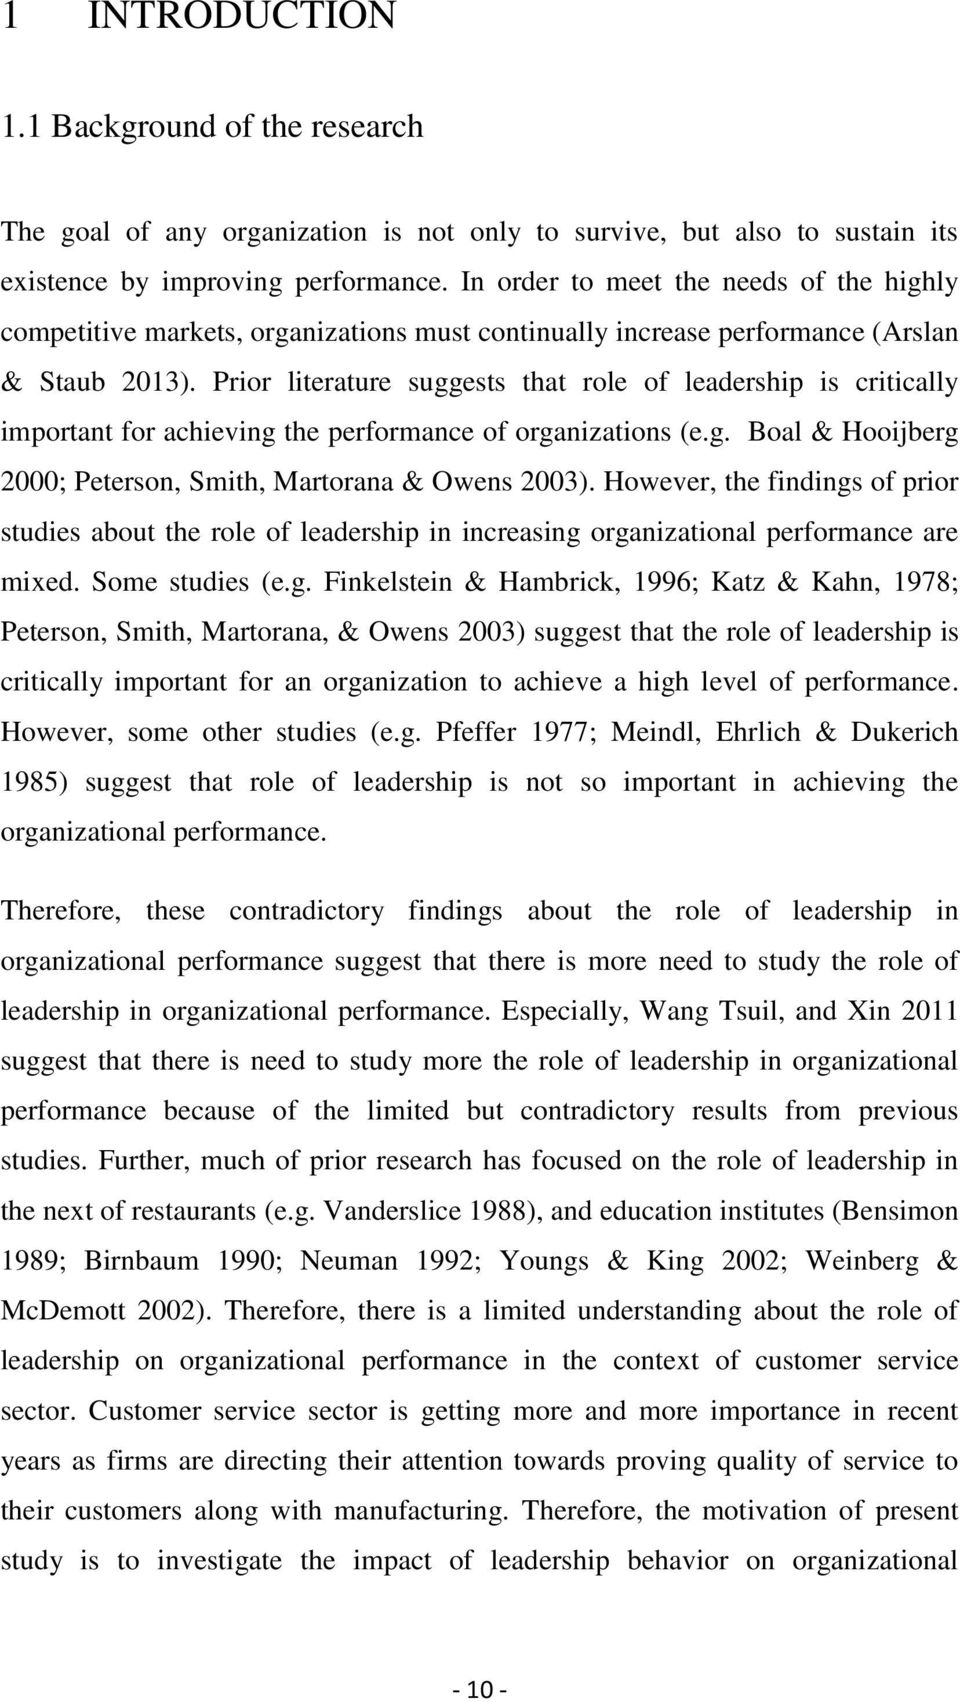 Prior literature suggests that role of leadership is critically important for achieving the performance of organizations (e.g. Boal & Hooijberg 2000; Peterson, Smith, Martorana & Owens 2003).